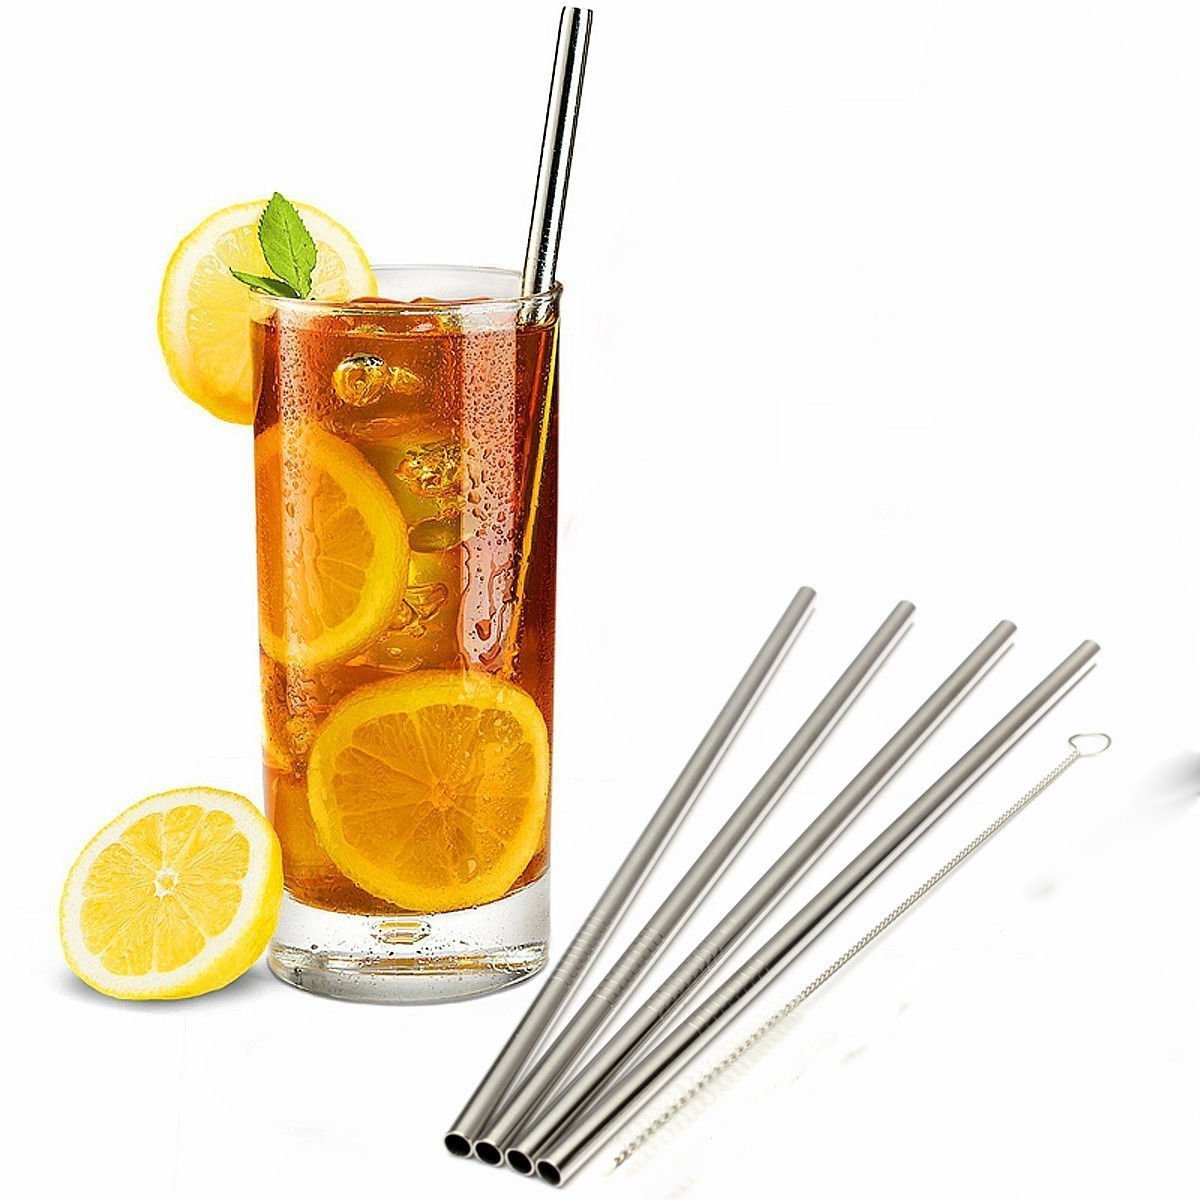 UltraByEasyPeasyStore Pack of 25 Stainless Steel Straws & 4 Cleaning Brushes 8mm thick Straight Reusable Washable NON-TOXIC (25) by UltraByEasyPeasyStore